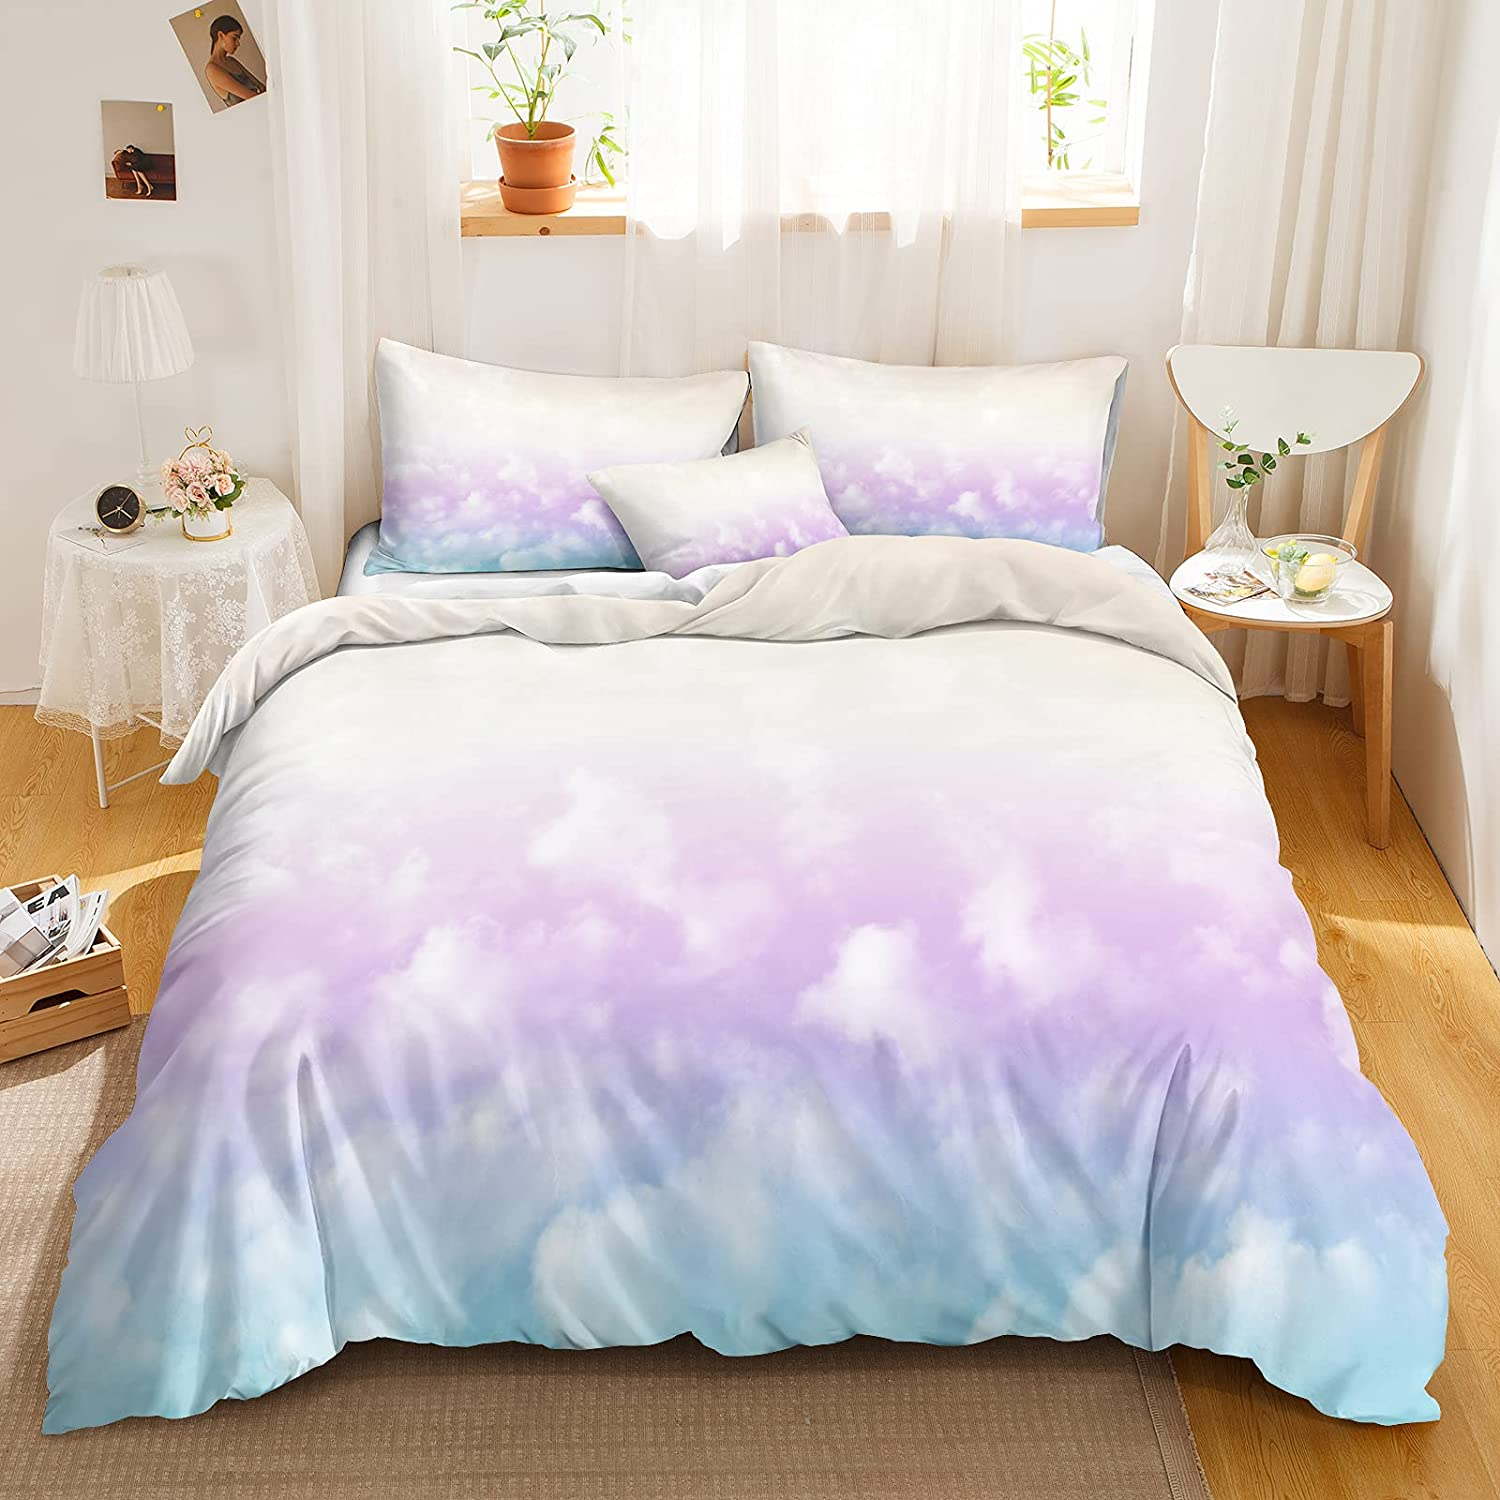 Direct Beauty products stock discount Cloud Bedding Rainbow Duvet Cover Set White Blue Printed Sky Clo